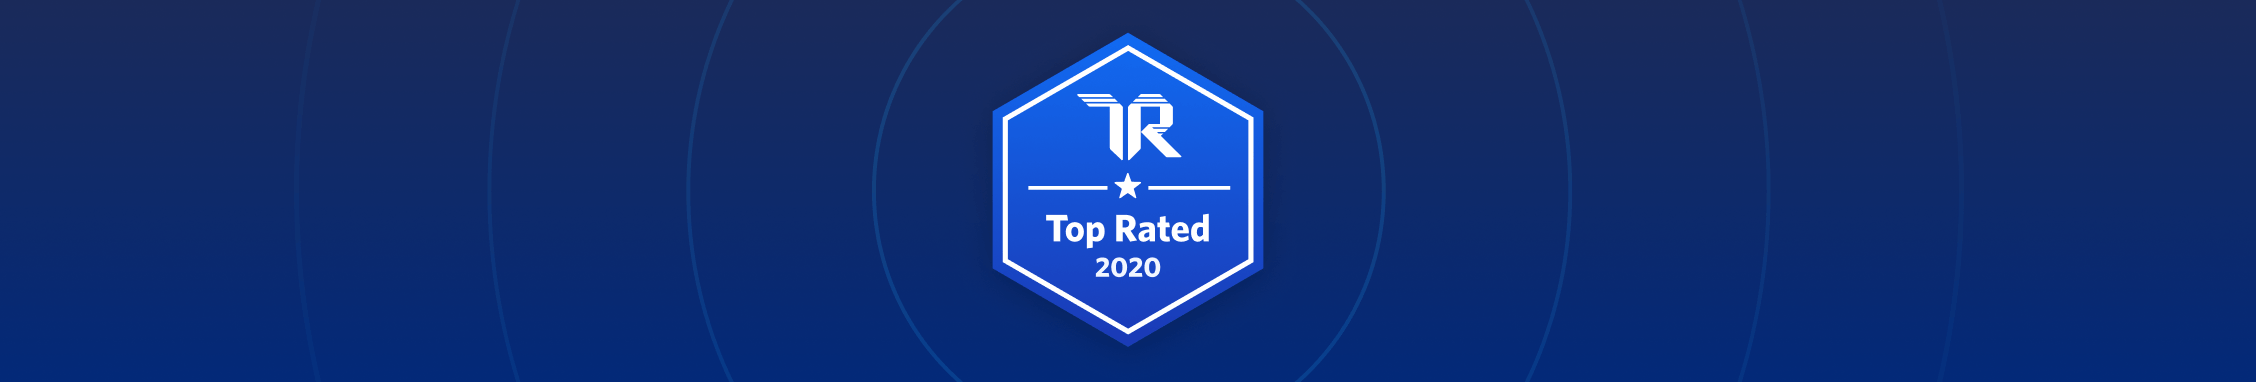 BlackLine won a 2020 'Top Rated Award' in the Financial Close category from TrustRadius Image